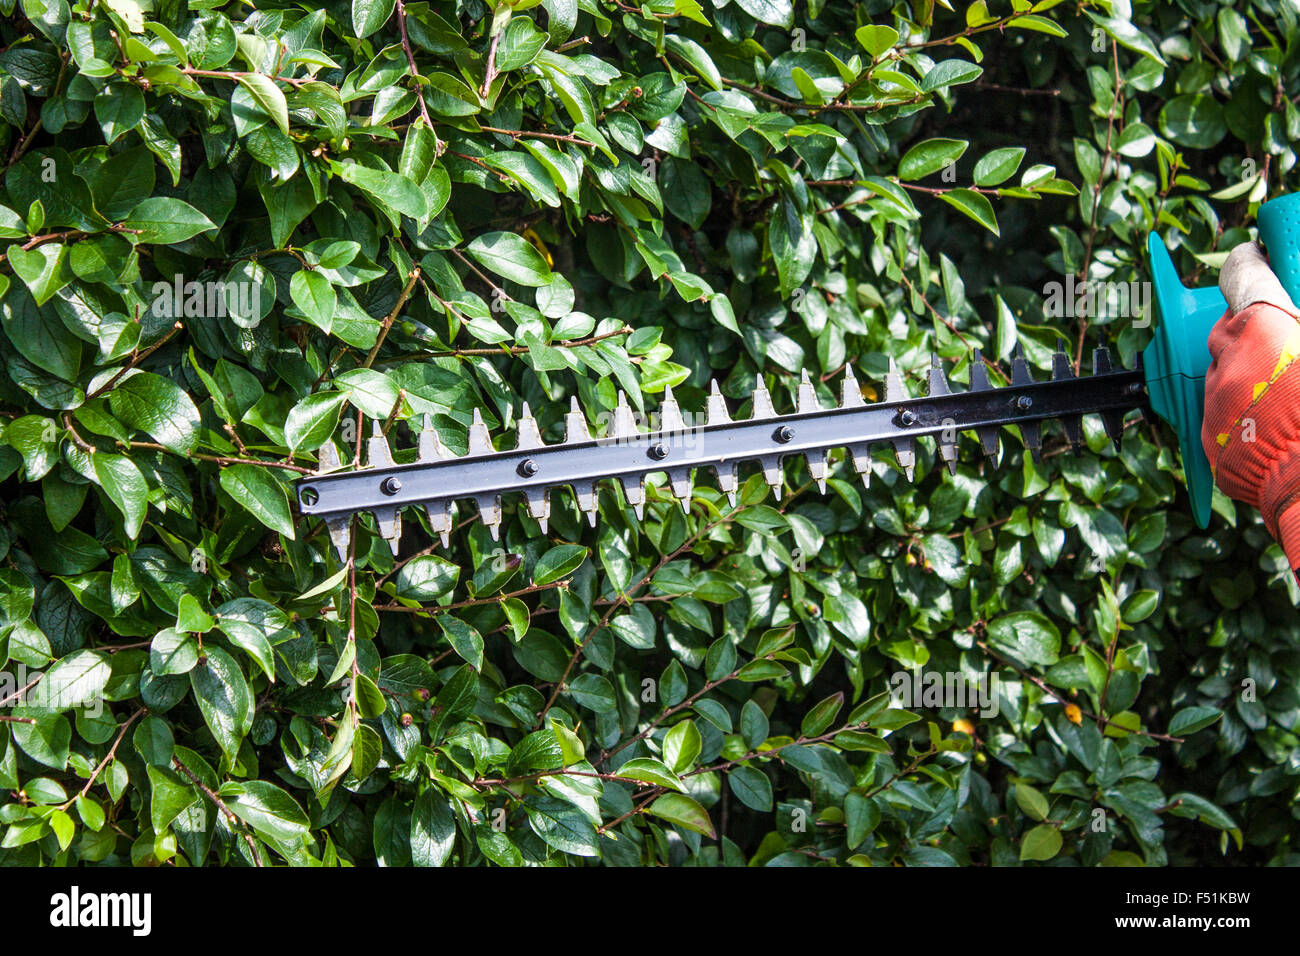 Gardener trimming bushes, with a trimmer machine - Stock Image